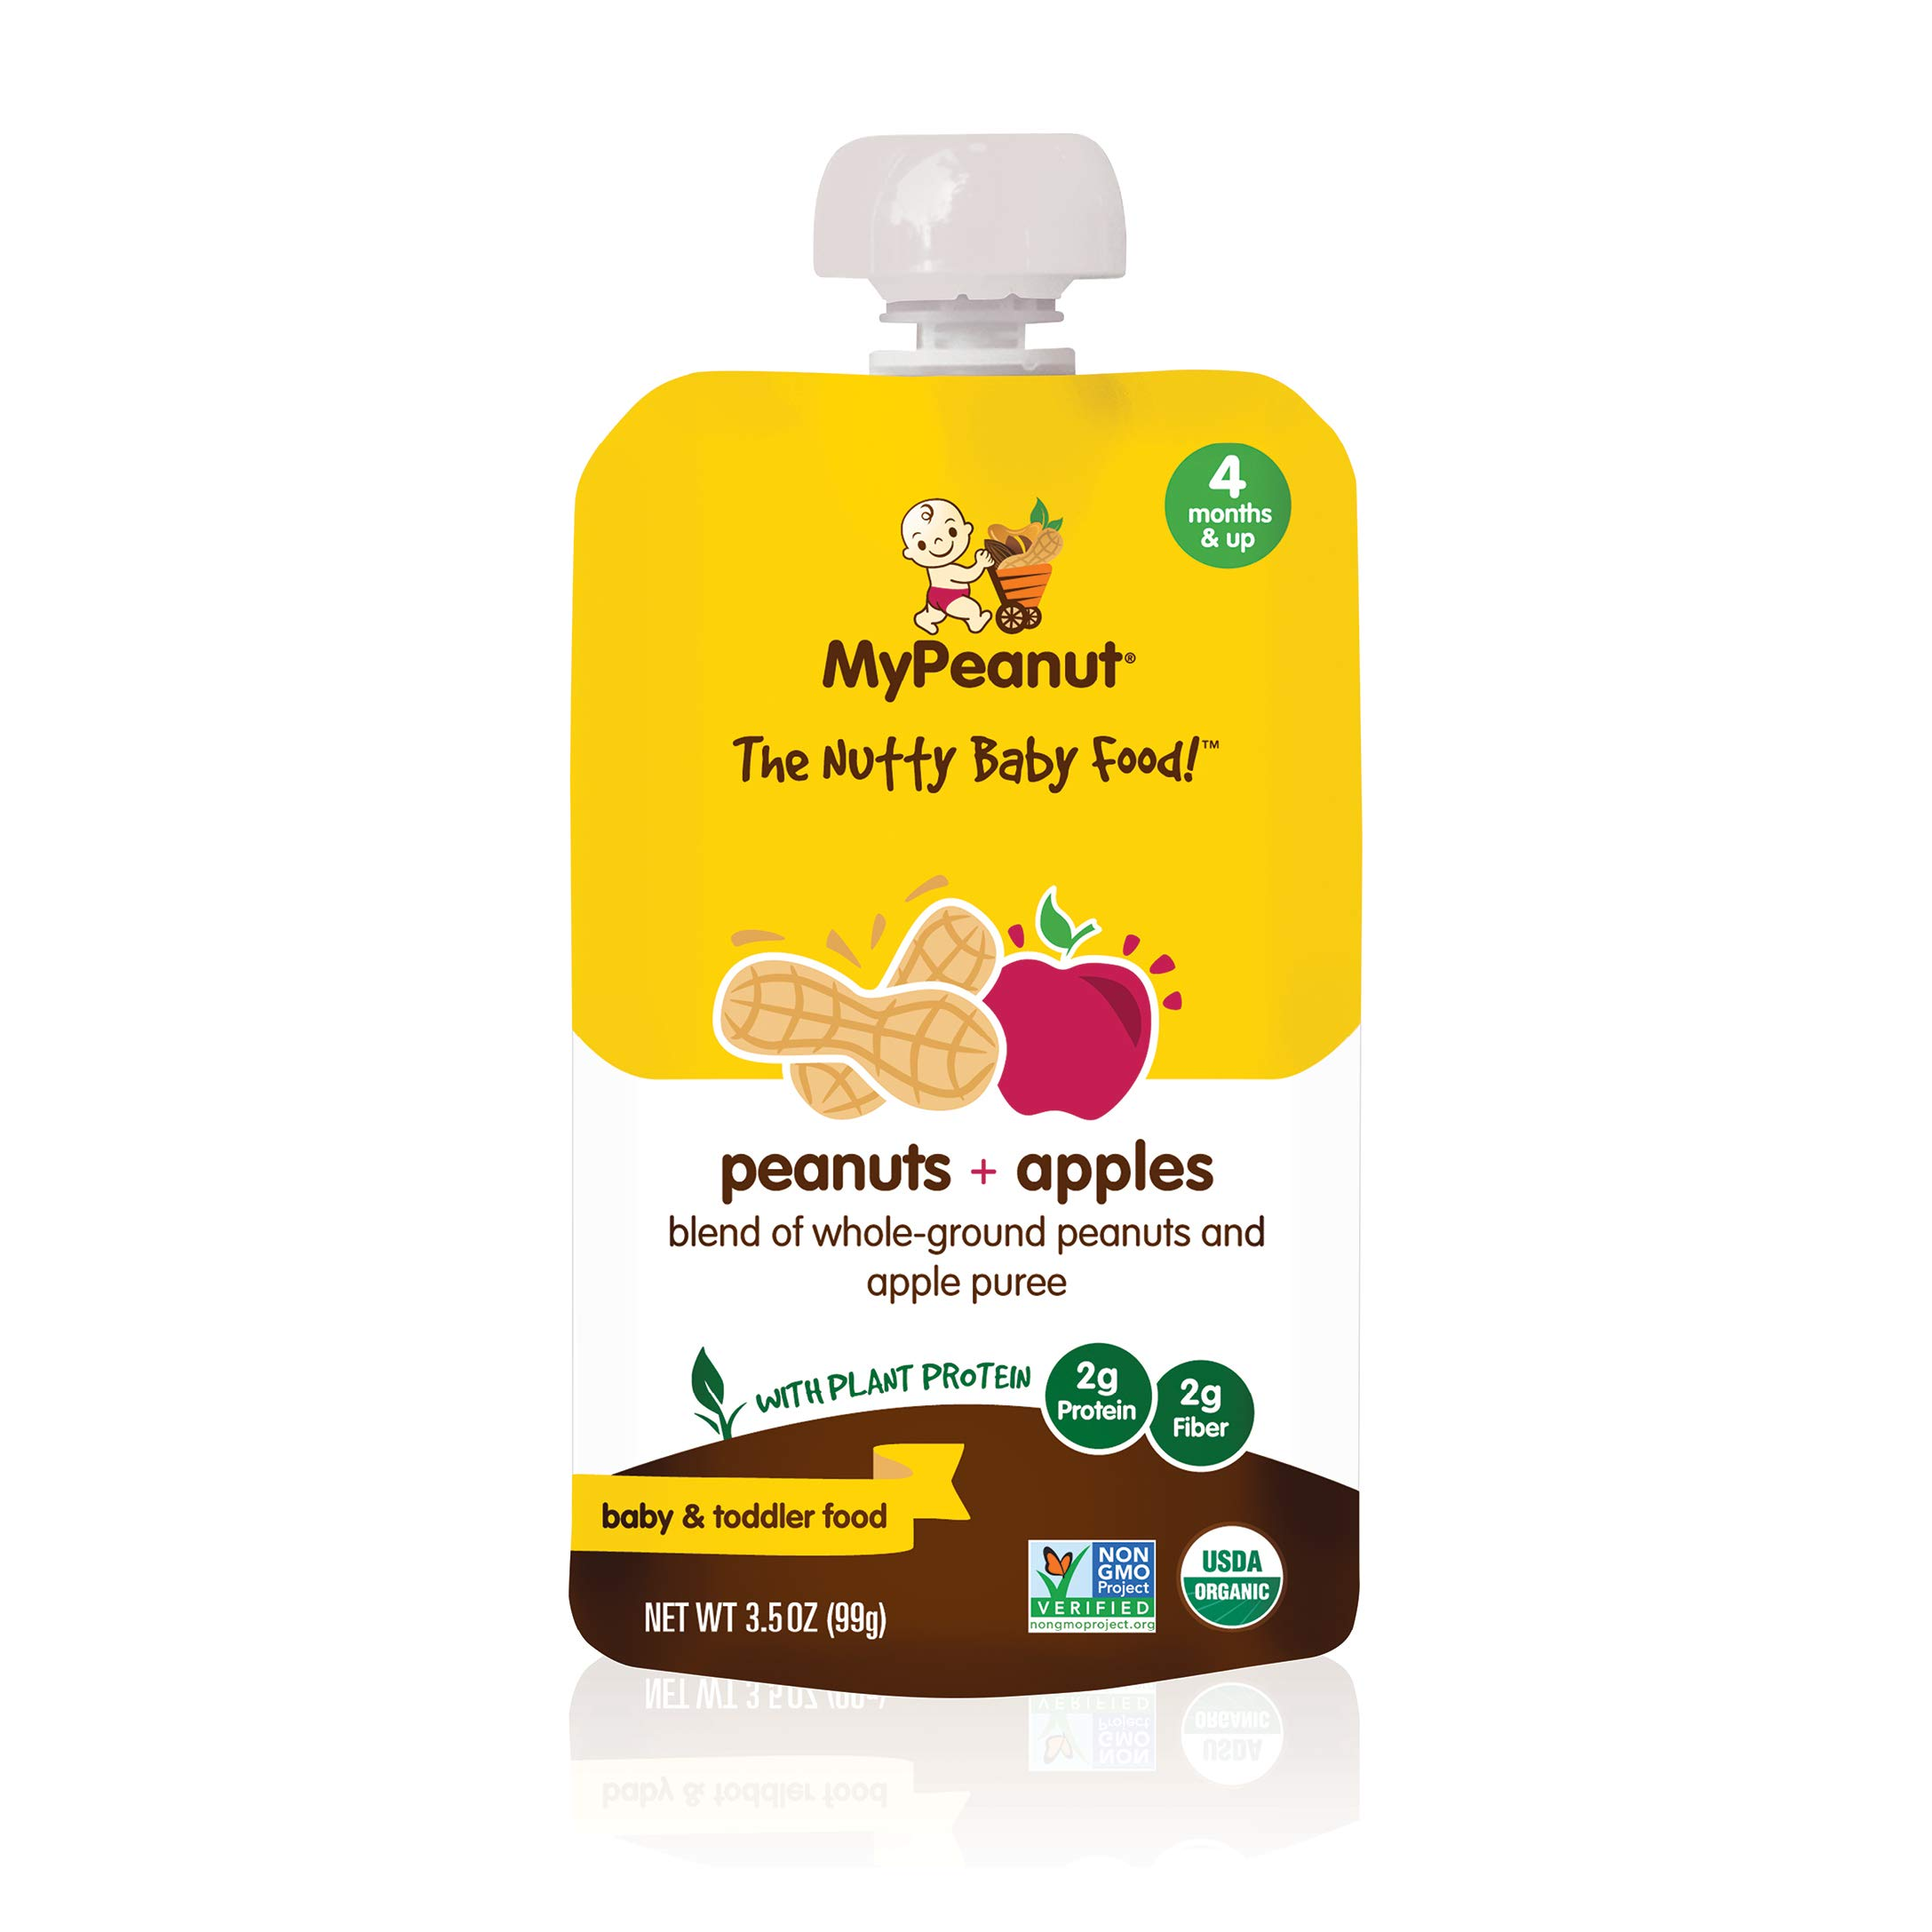 MyPeanut Baby Food, Organic Stage 1 Peanut and Apple Puree for Introducing and Feeding Babies and Toddlers Nuts, Non-GMO, BPA Free 3.5 oz Pouch, 6 Pack